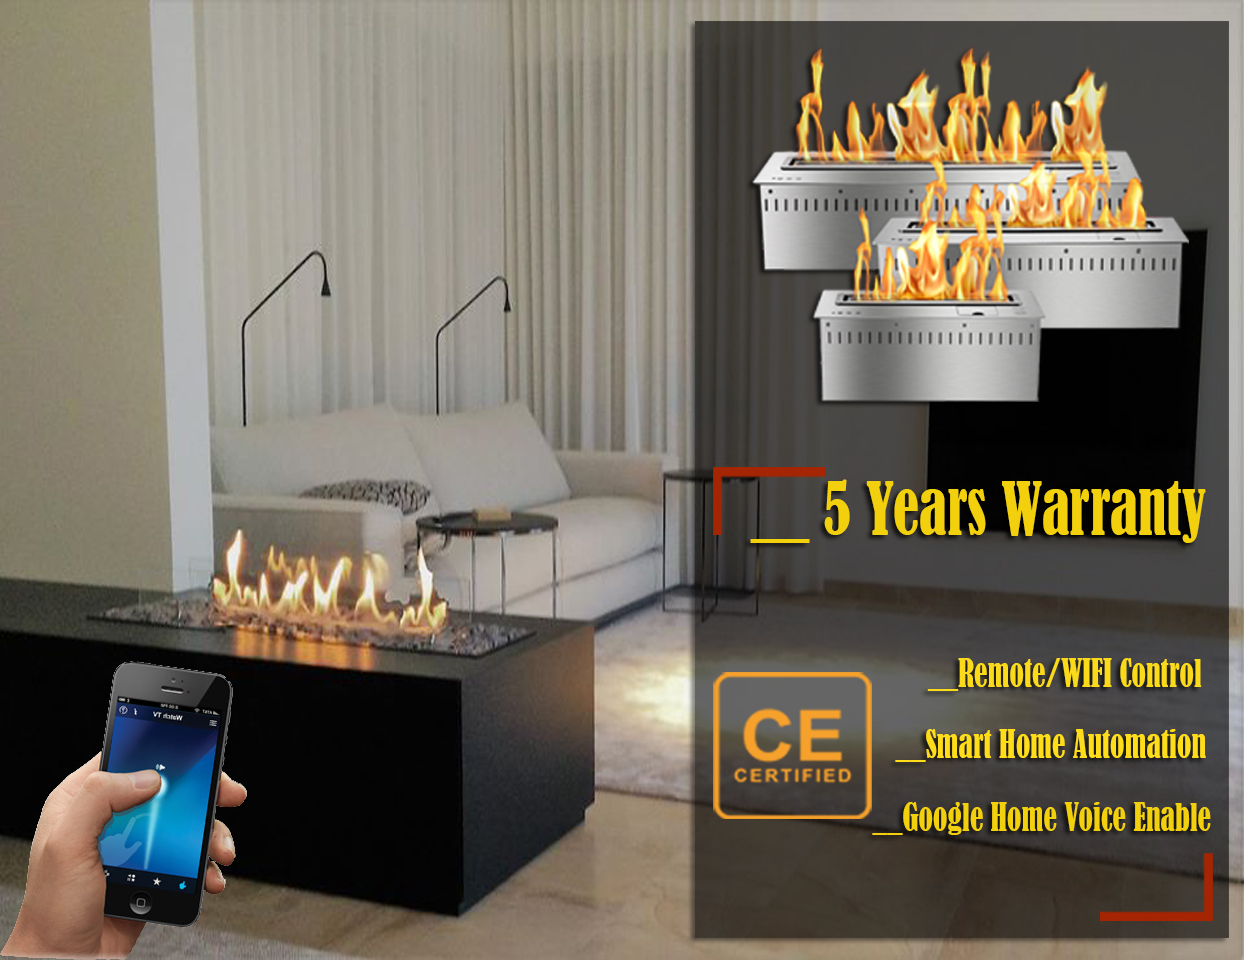 Hot Sale 30 Inches Knx Home Automation Fireplace Ethanol Electronic